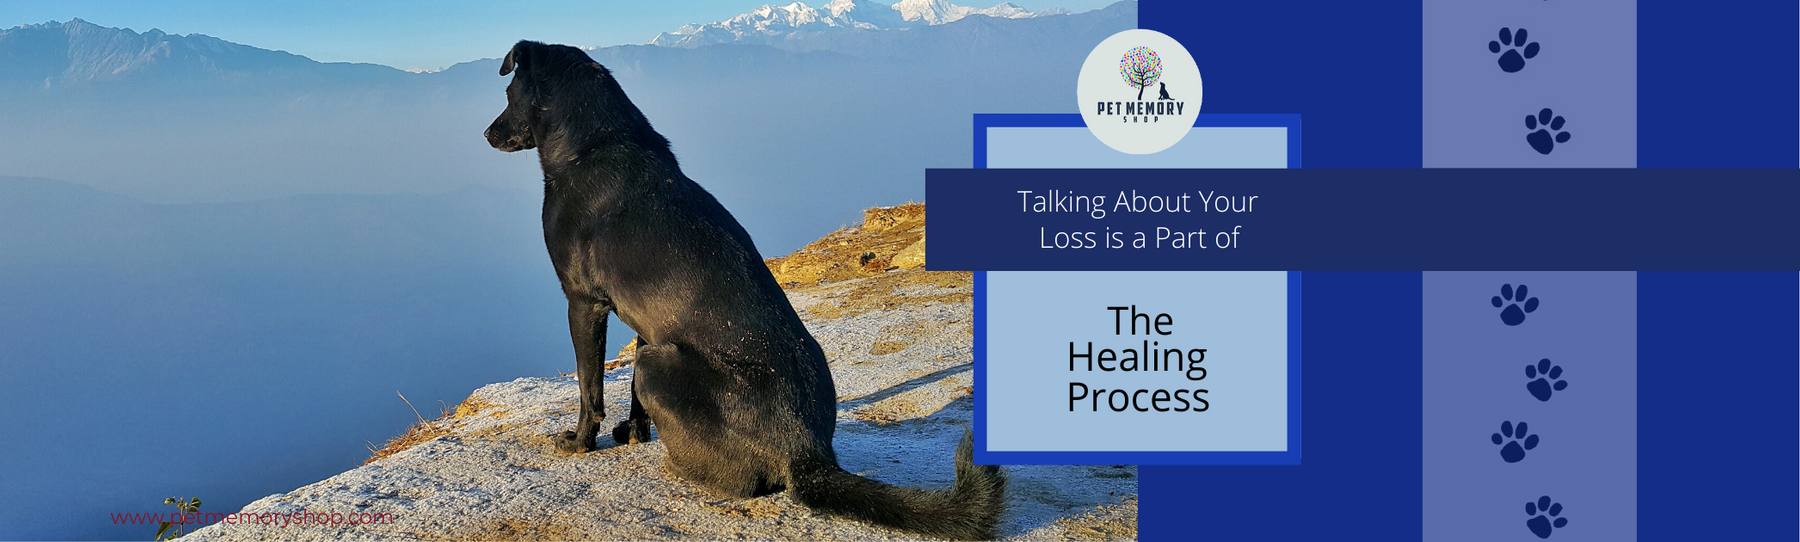 Talking about Your Loss is Part of The Healing Process